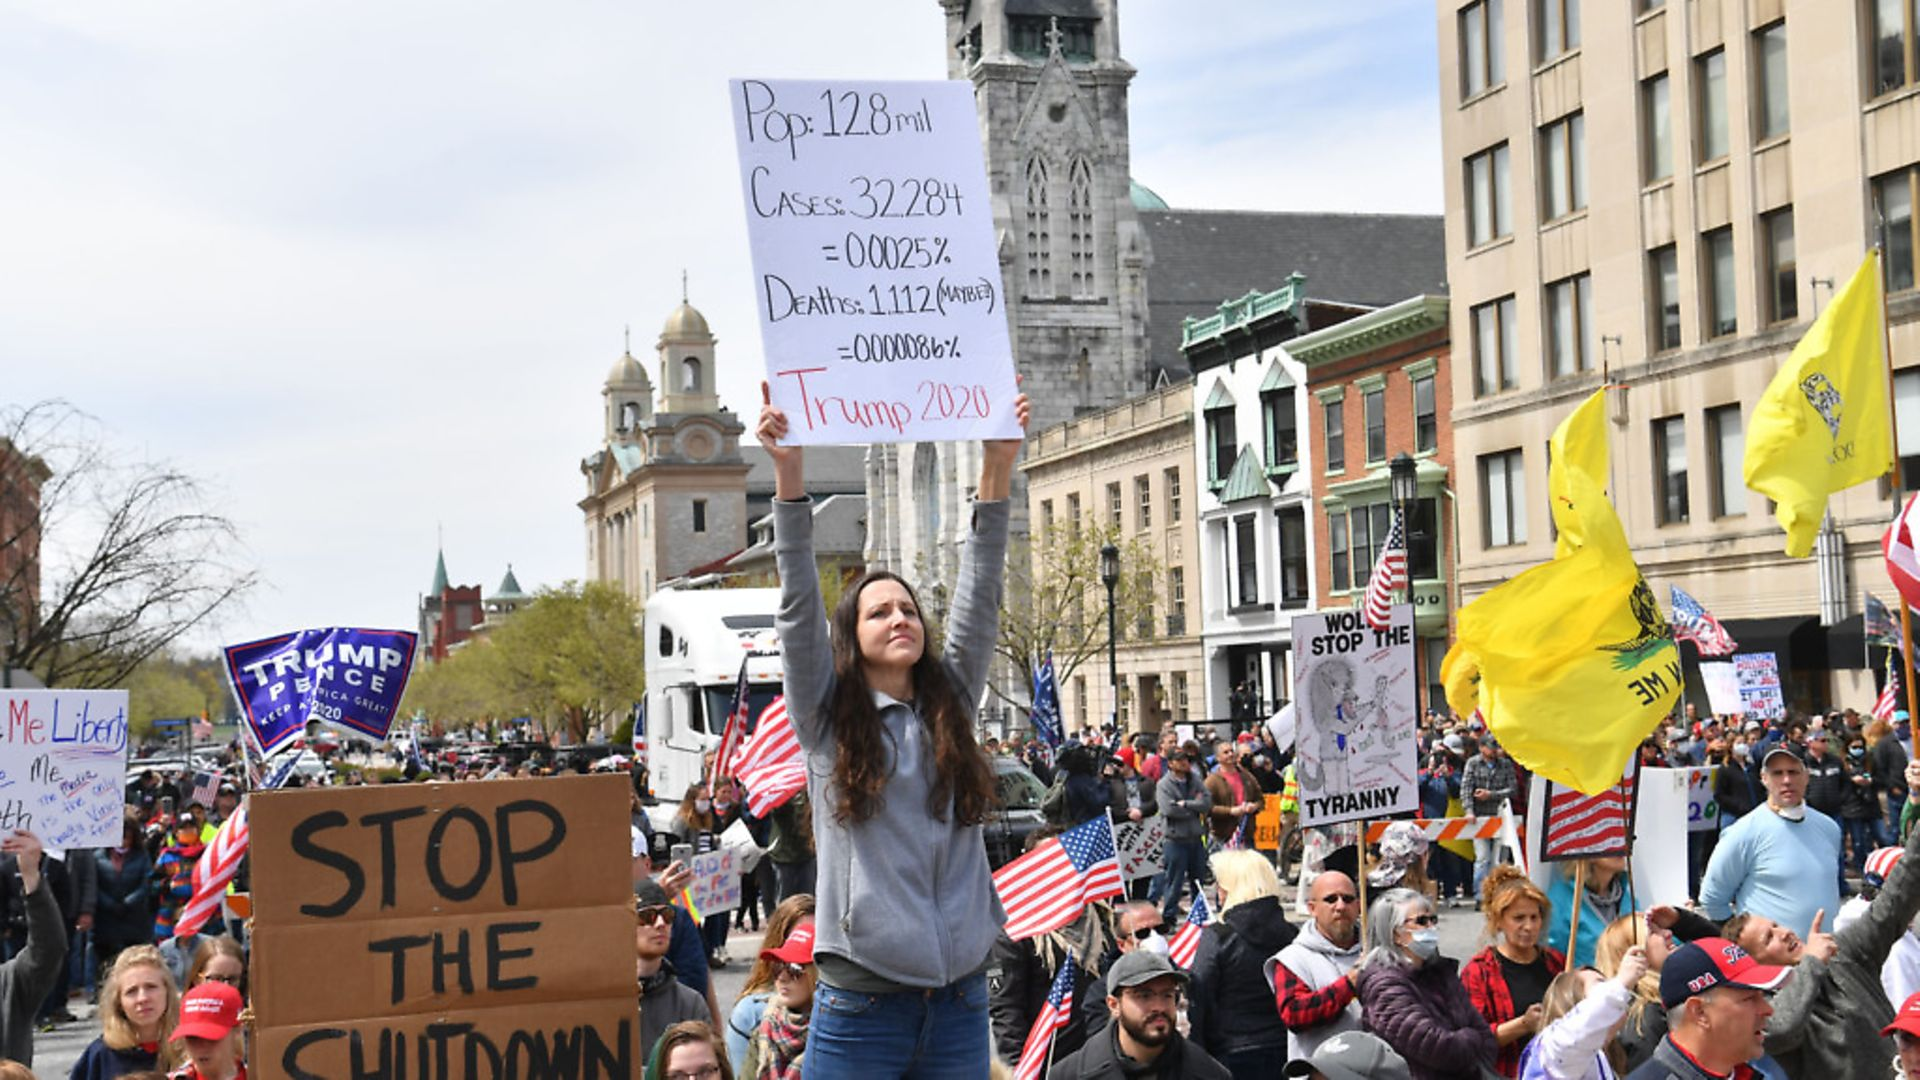 """Protestors take part in a """"reopen"""" Pennsylvania demonstration on April 20, 2020, in Harrisburg, Pennsylvania. Picture: Getty Images - Credit: AFP via Getty Images"""